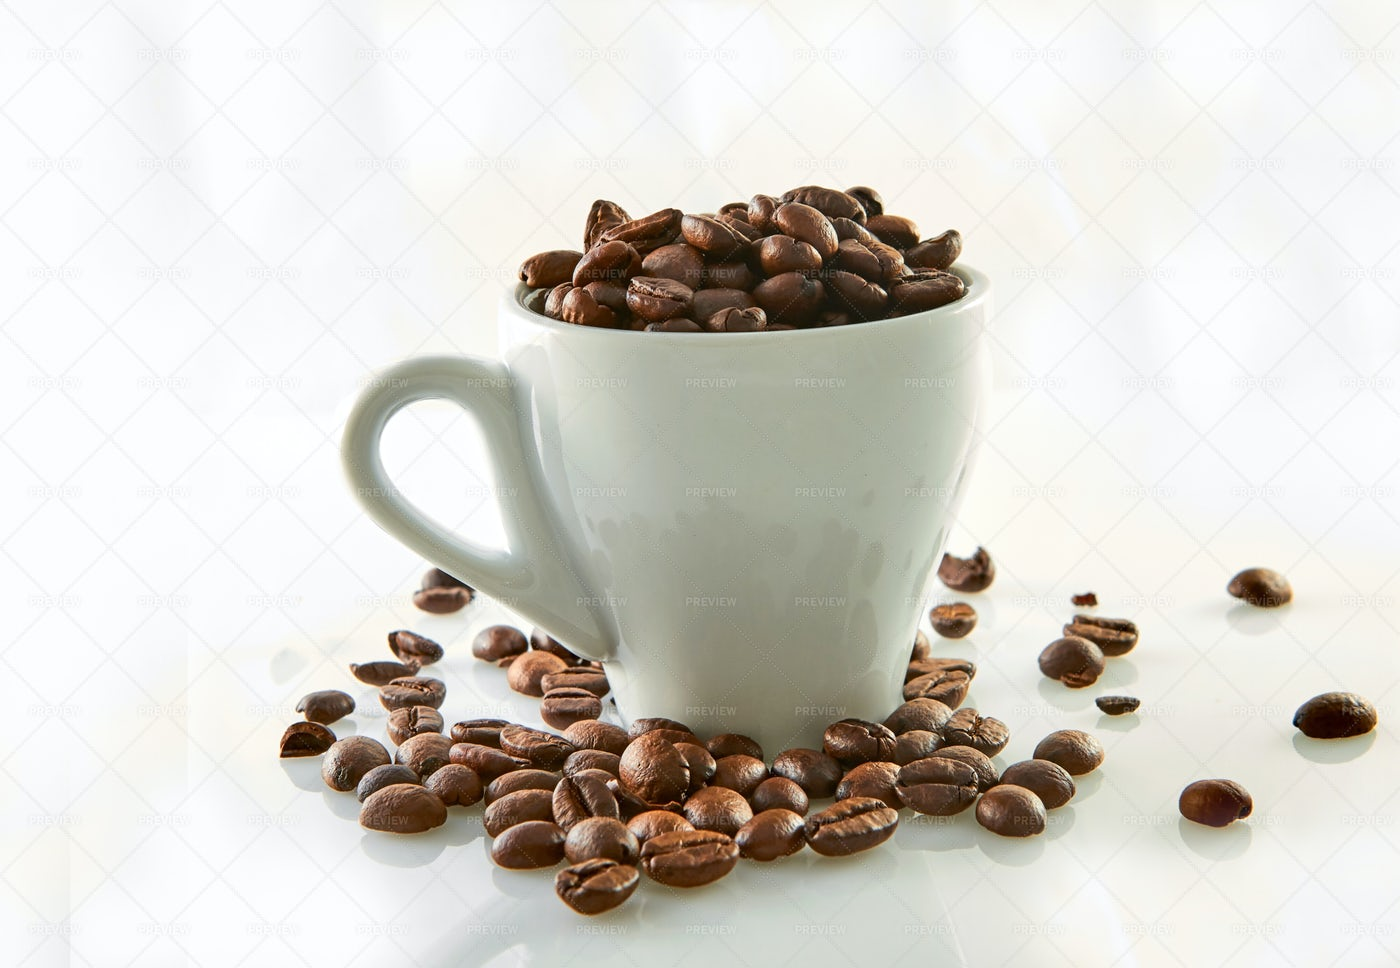 Beans In A Coffee Cup: Stock Photos